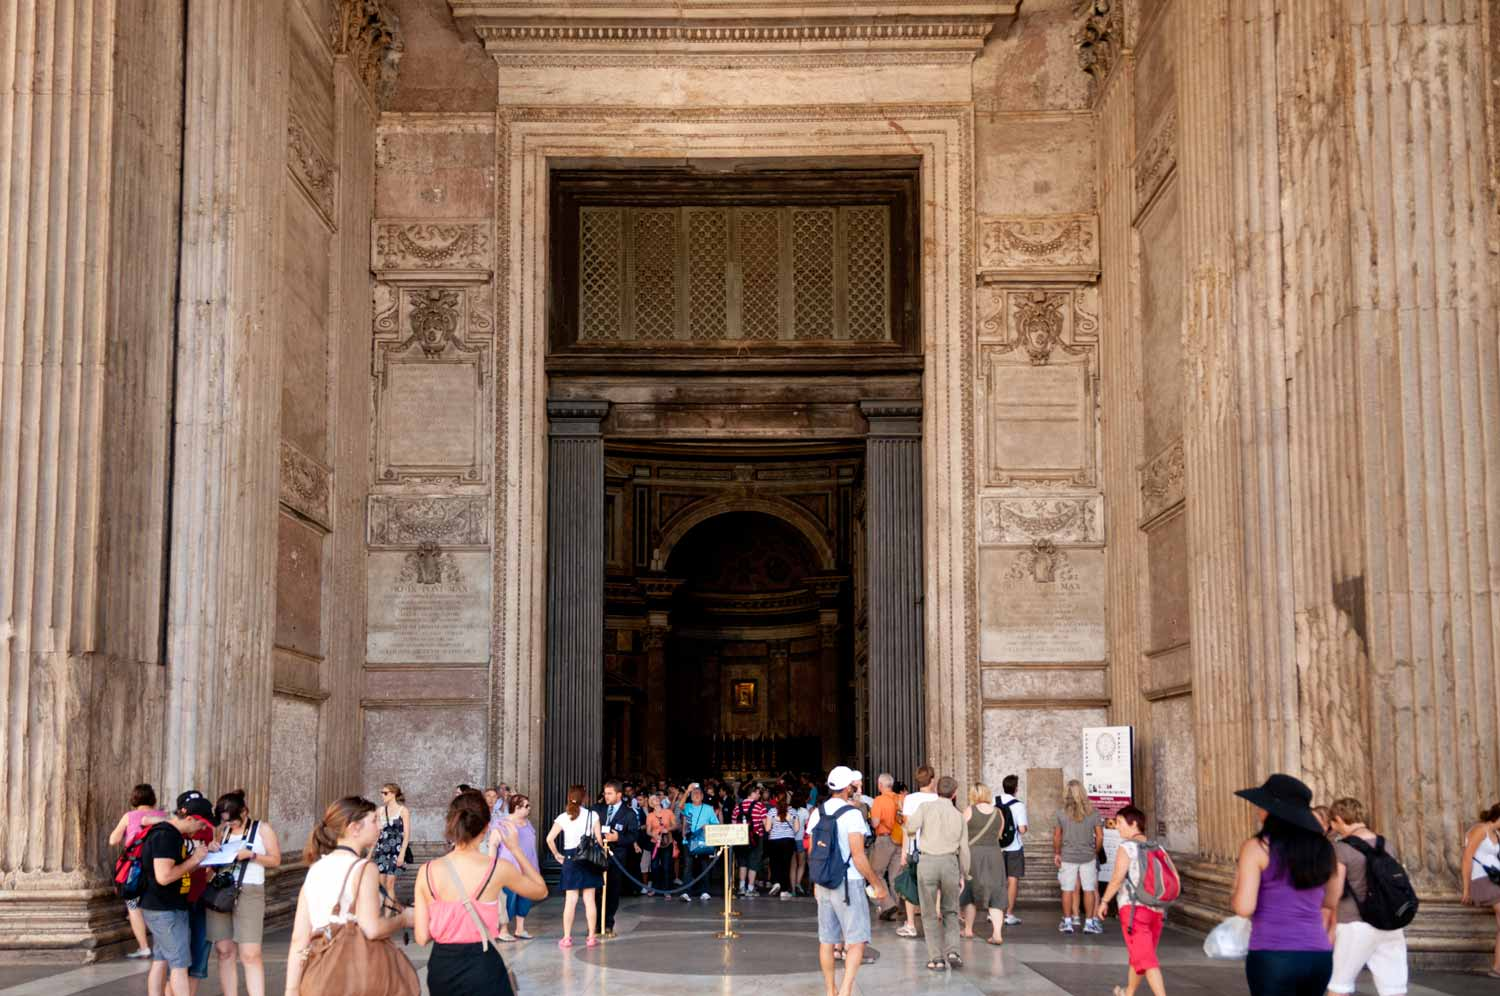 The Portico leading into the Rotunda.